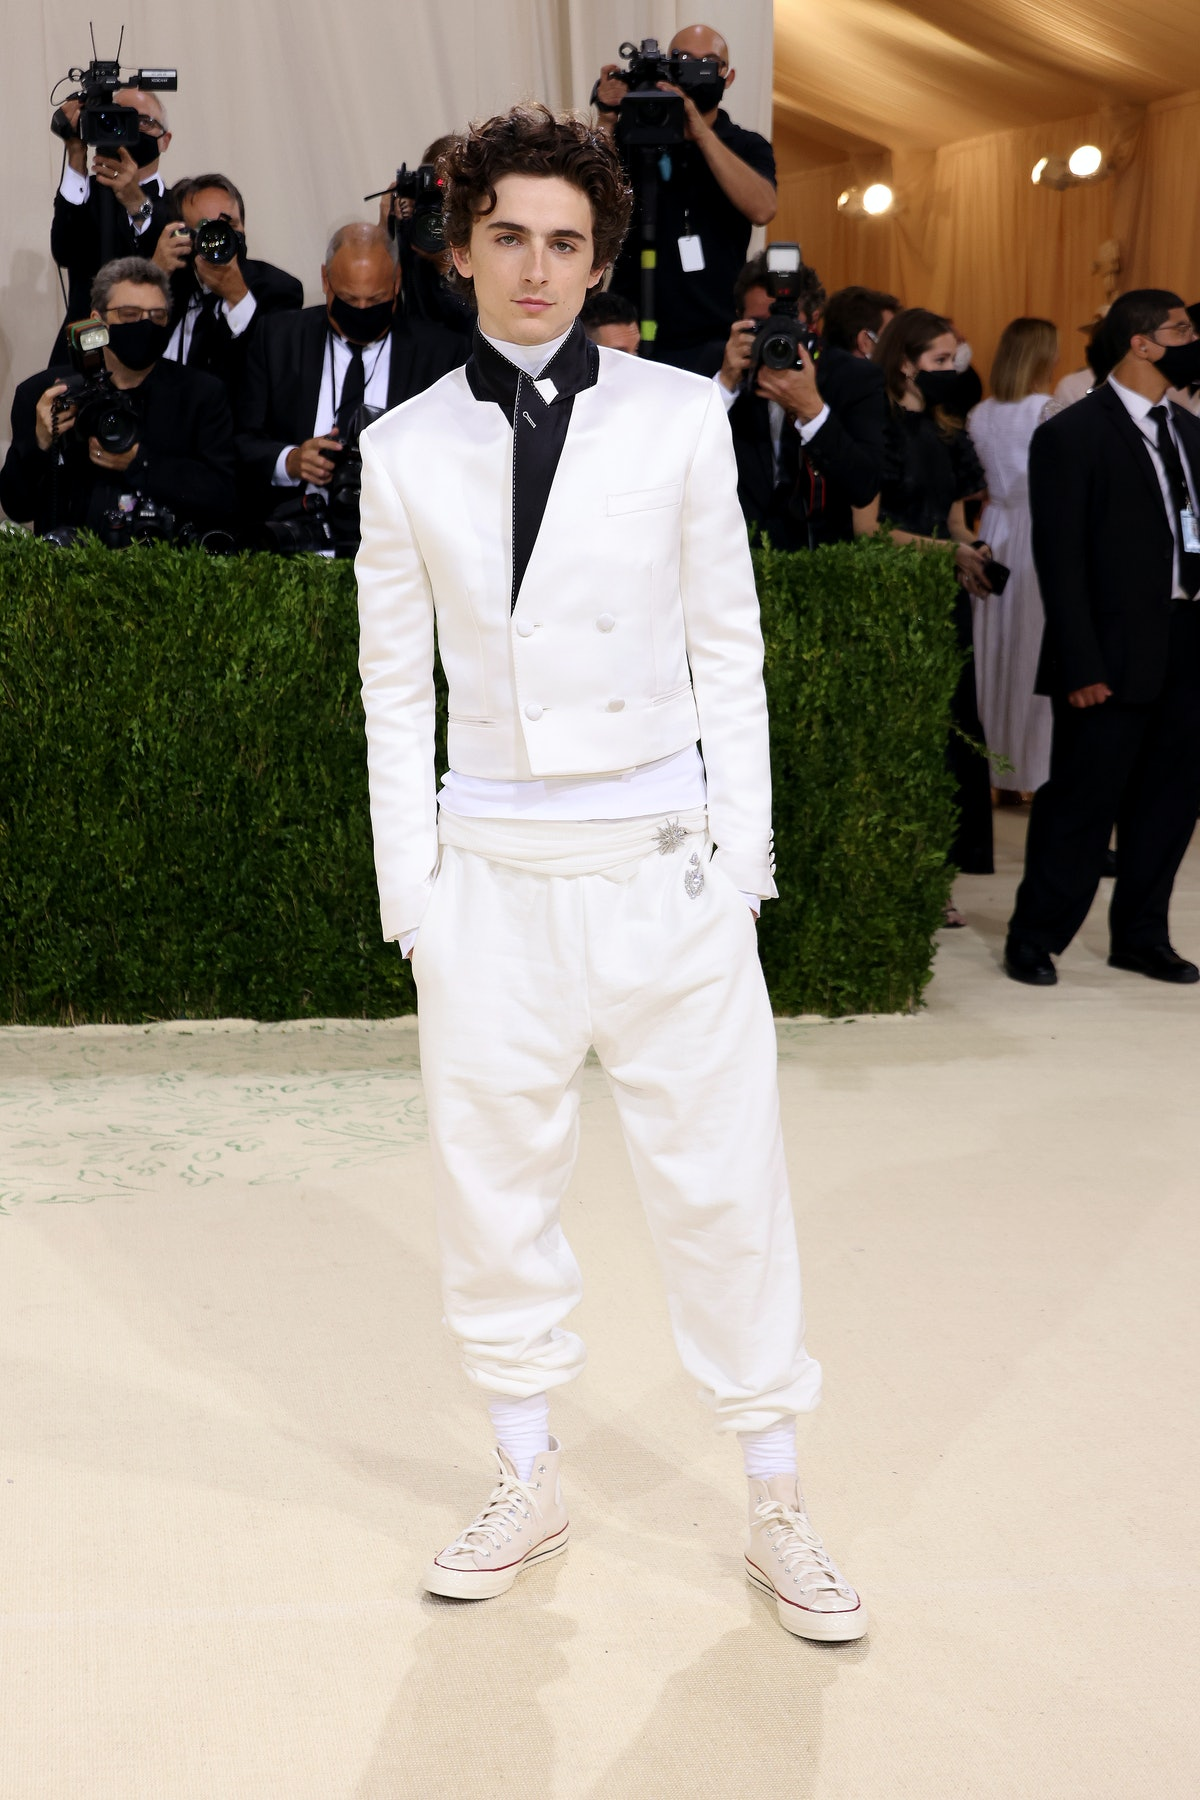 Met Gala co-chair Timothée Chalamet attended the 2021 Met Gala in a Haider Ackermann suit and Conver...